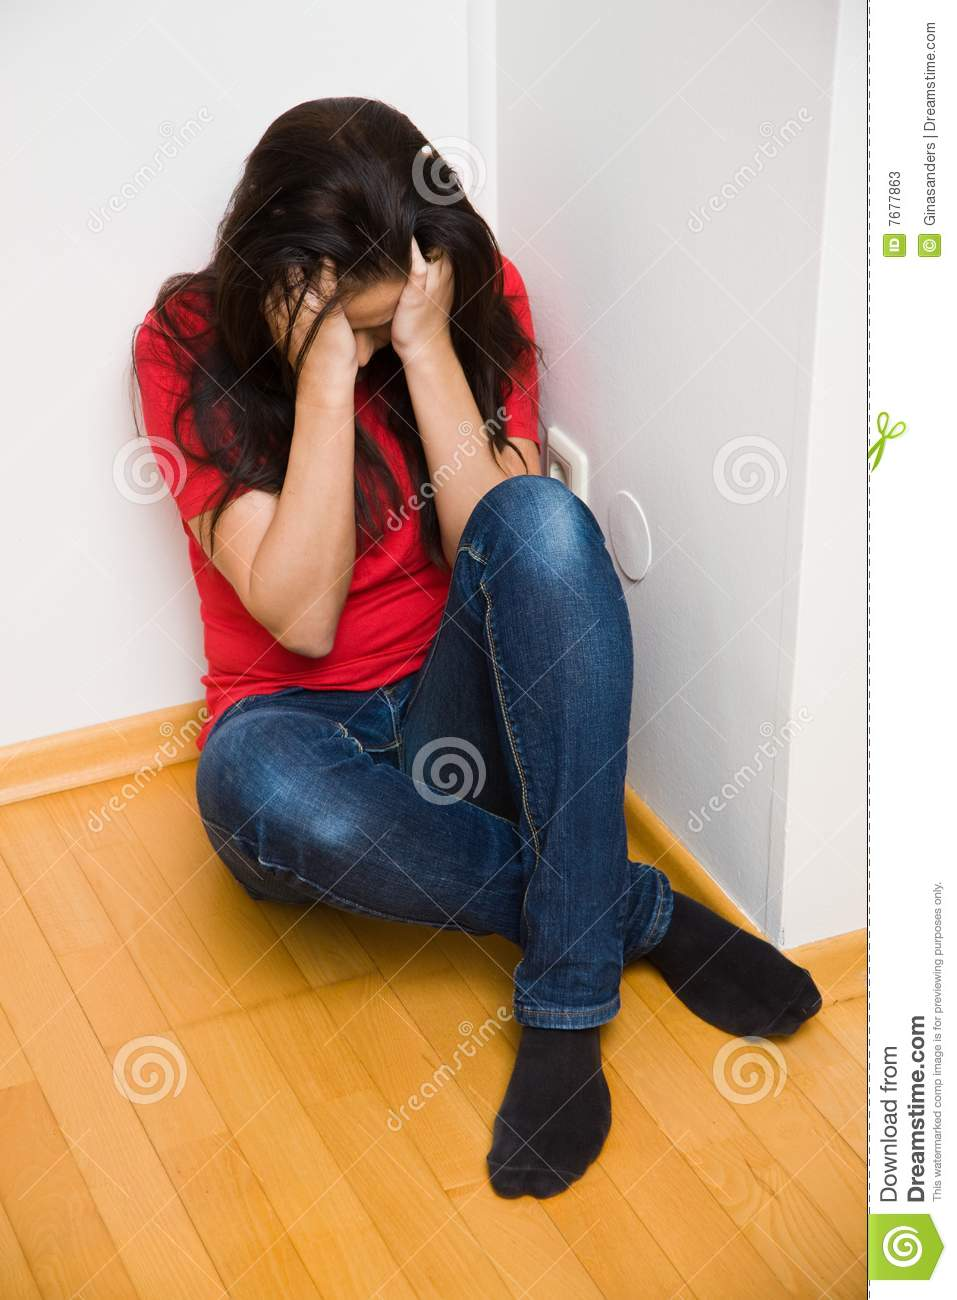 Anxious woman symbol of violence in the family stock image image anxious woman symbol of violence in the family buycottarizona Choice Image